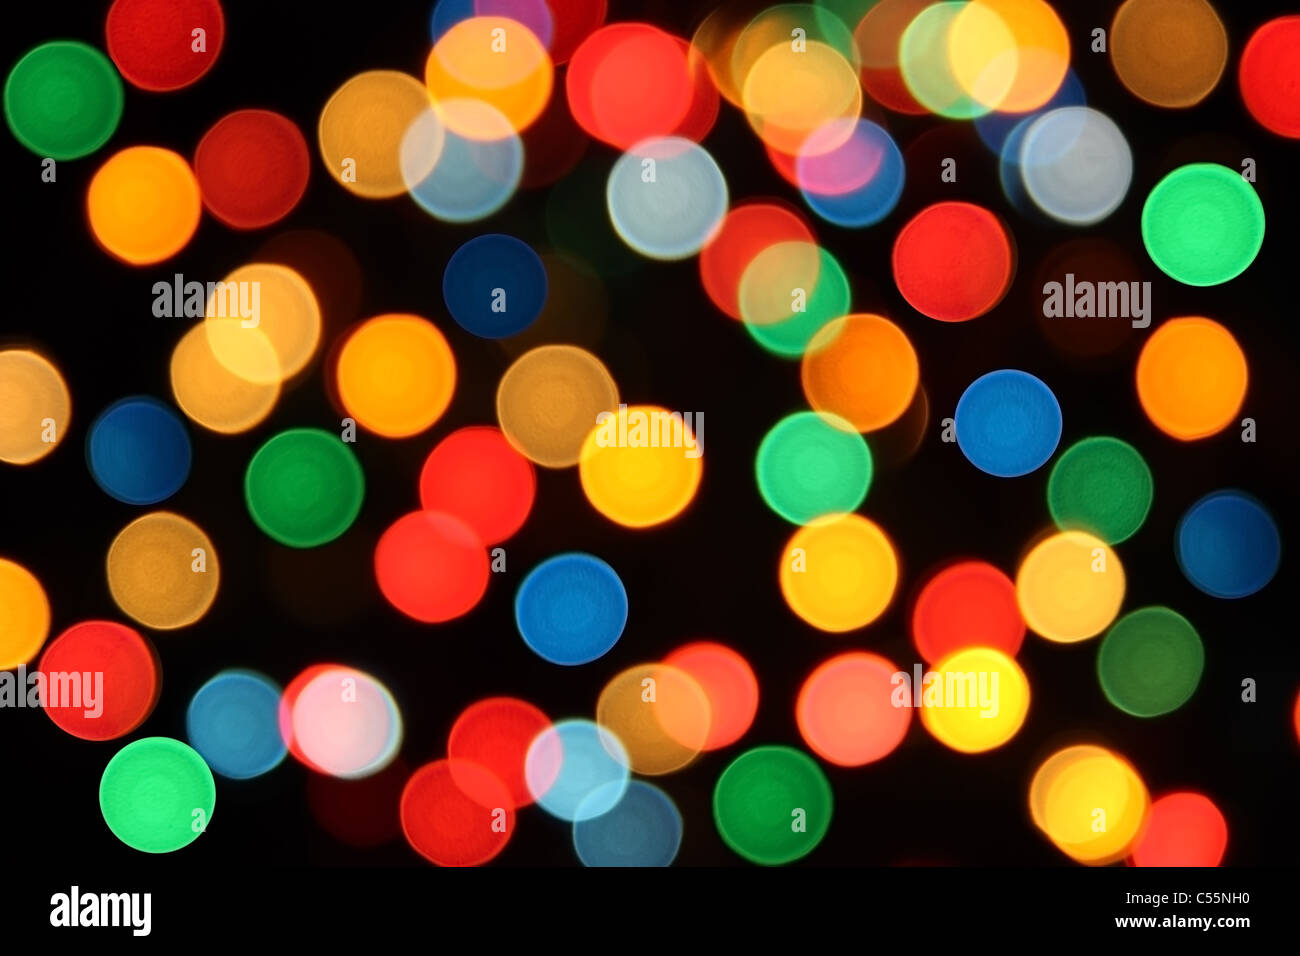 Spots Of Different Colors Red Blue Green Yellow Orange On